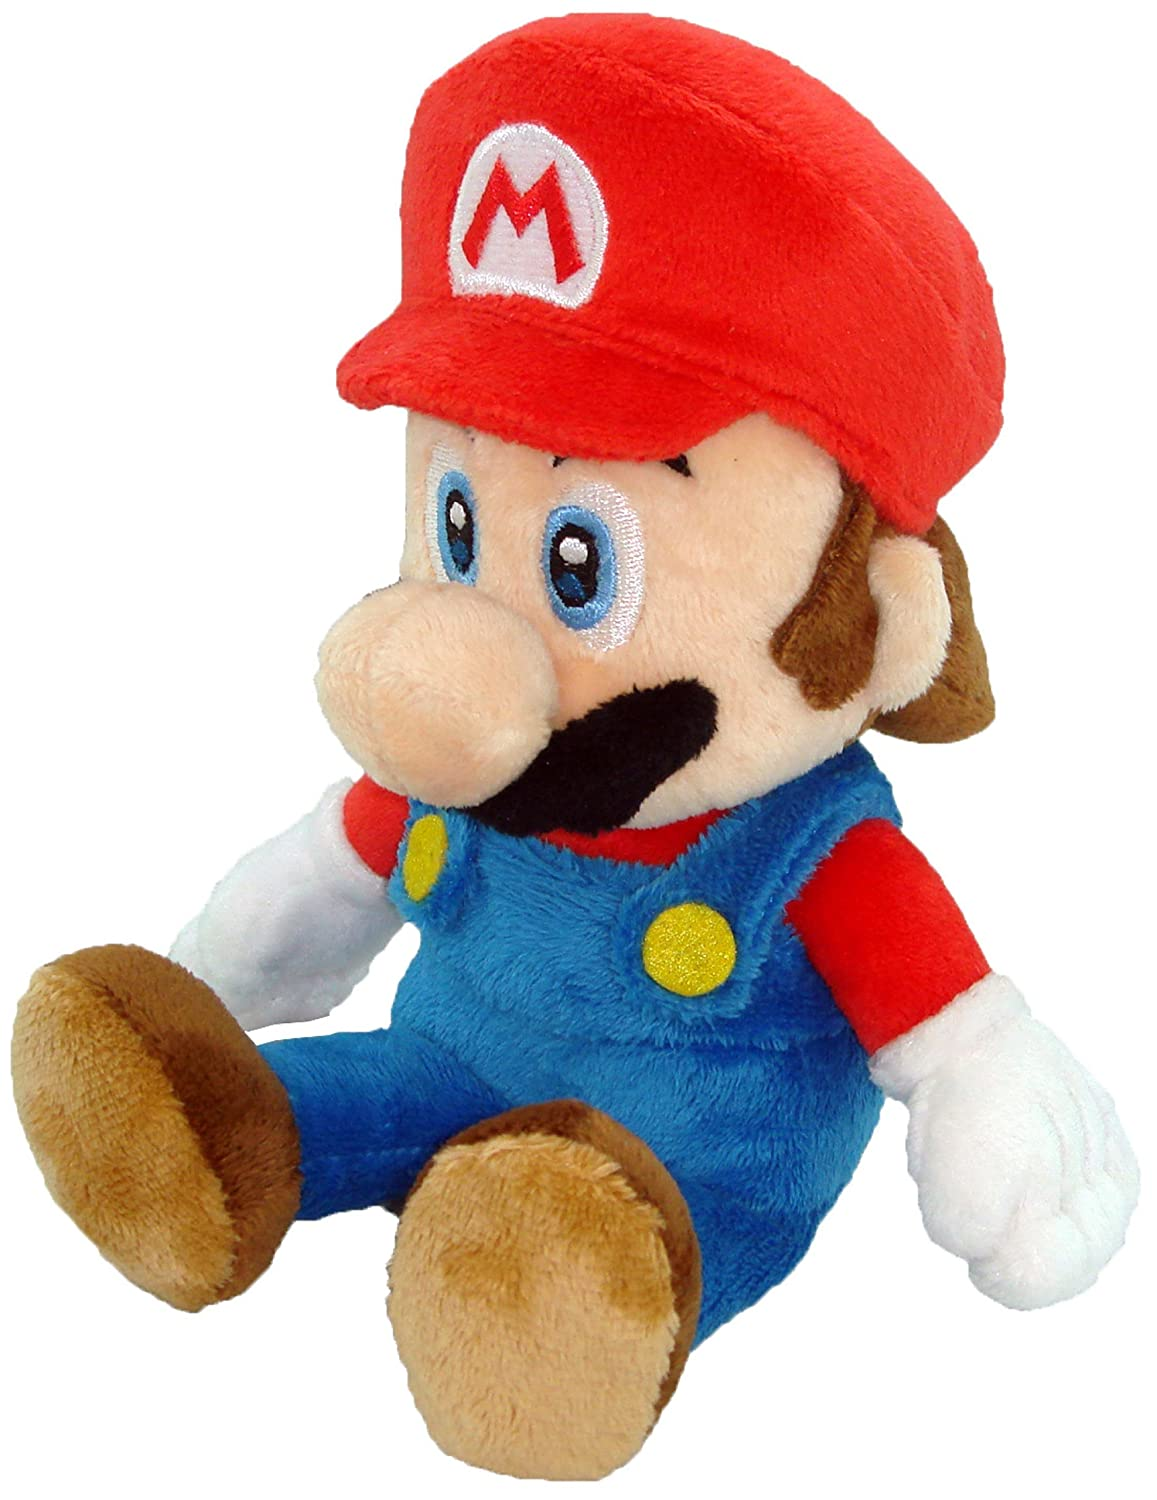 Little Buddy Super Mario Bros 8-Inch Mario Plush 1214 Accessory Consumer Accessories